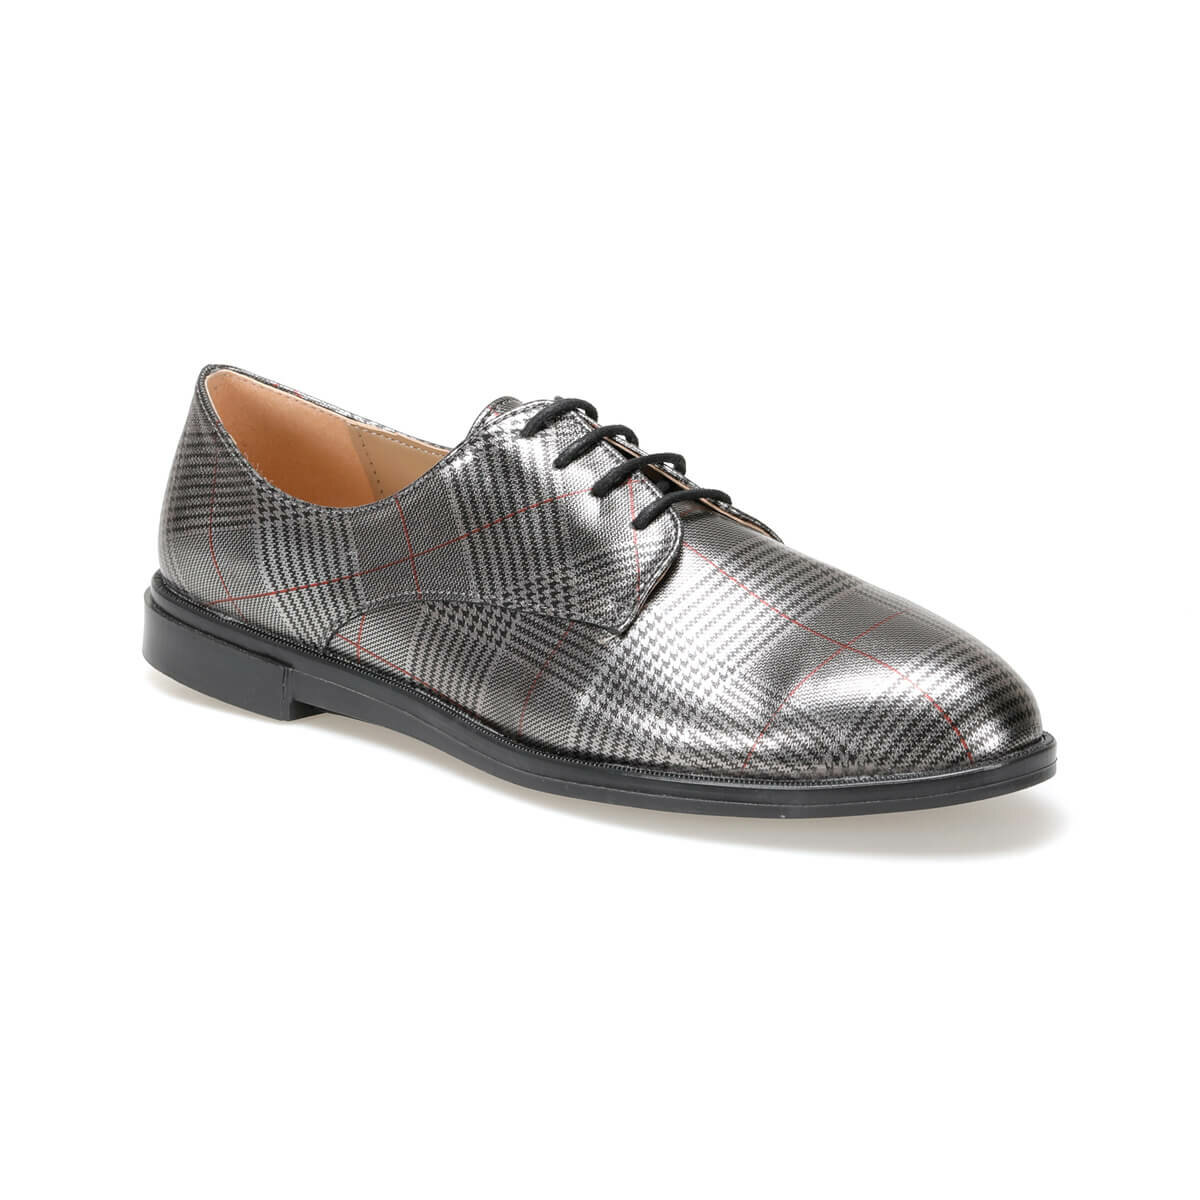 FLO CRABBE77Z PATENT LEATHER Gray Women 'S Oxford Shoes BUTIGO